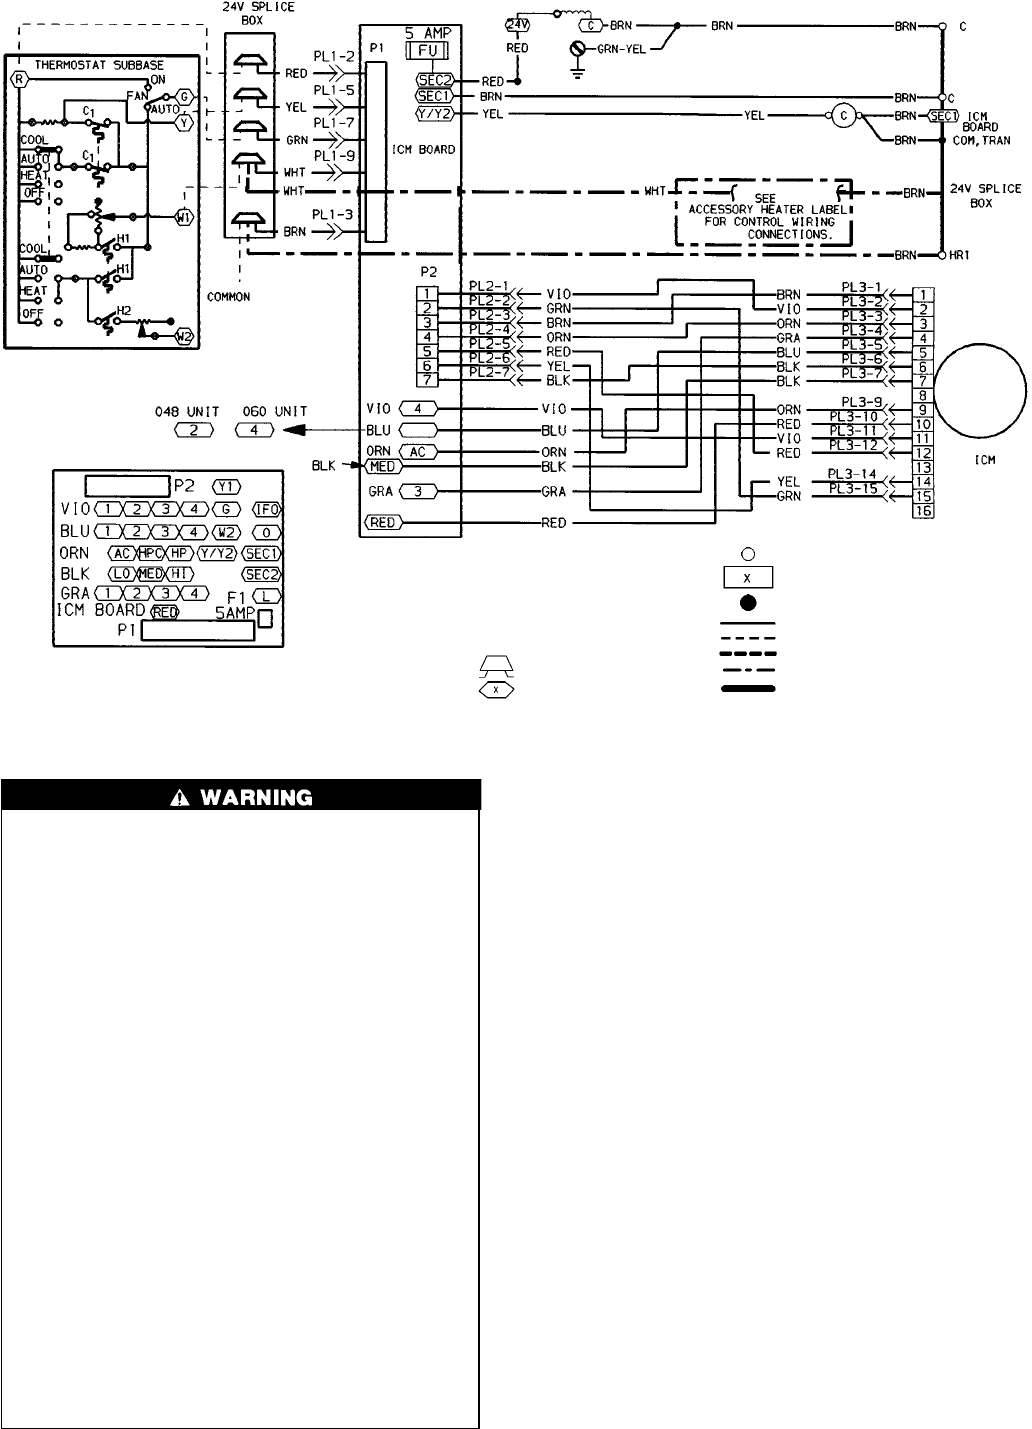 Carrier 50Ss018 060 Users Manual